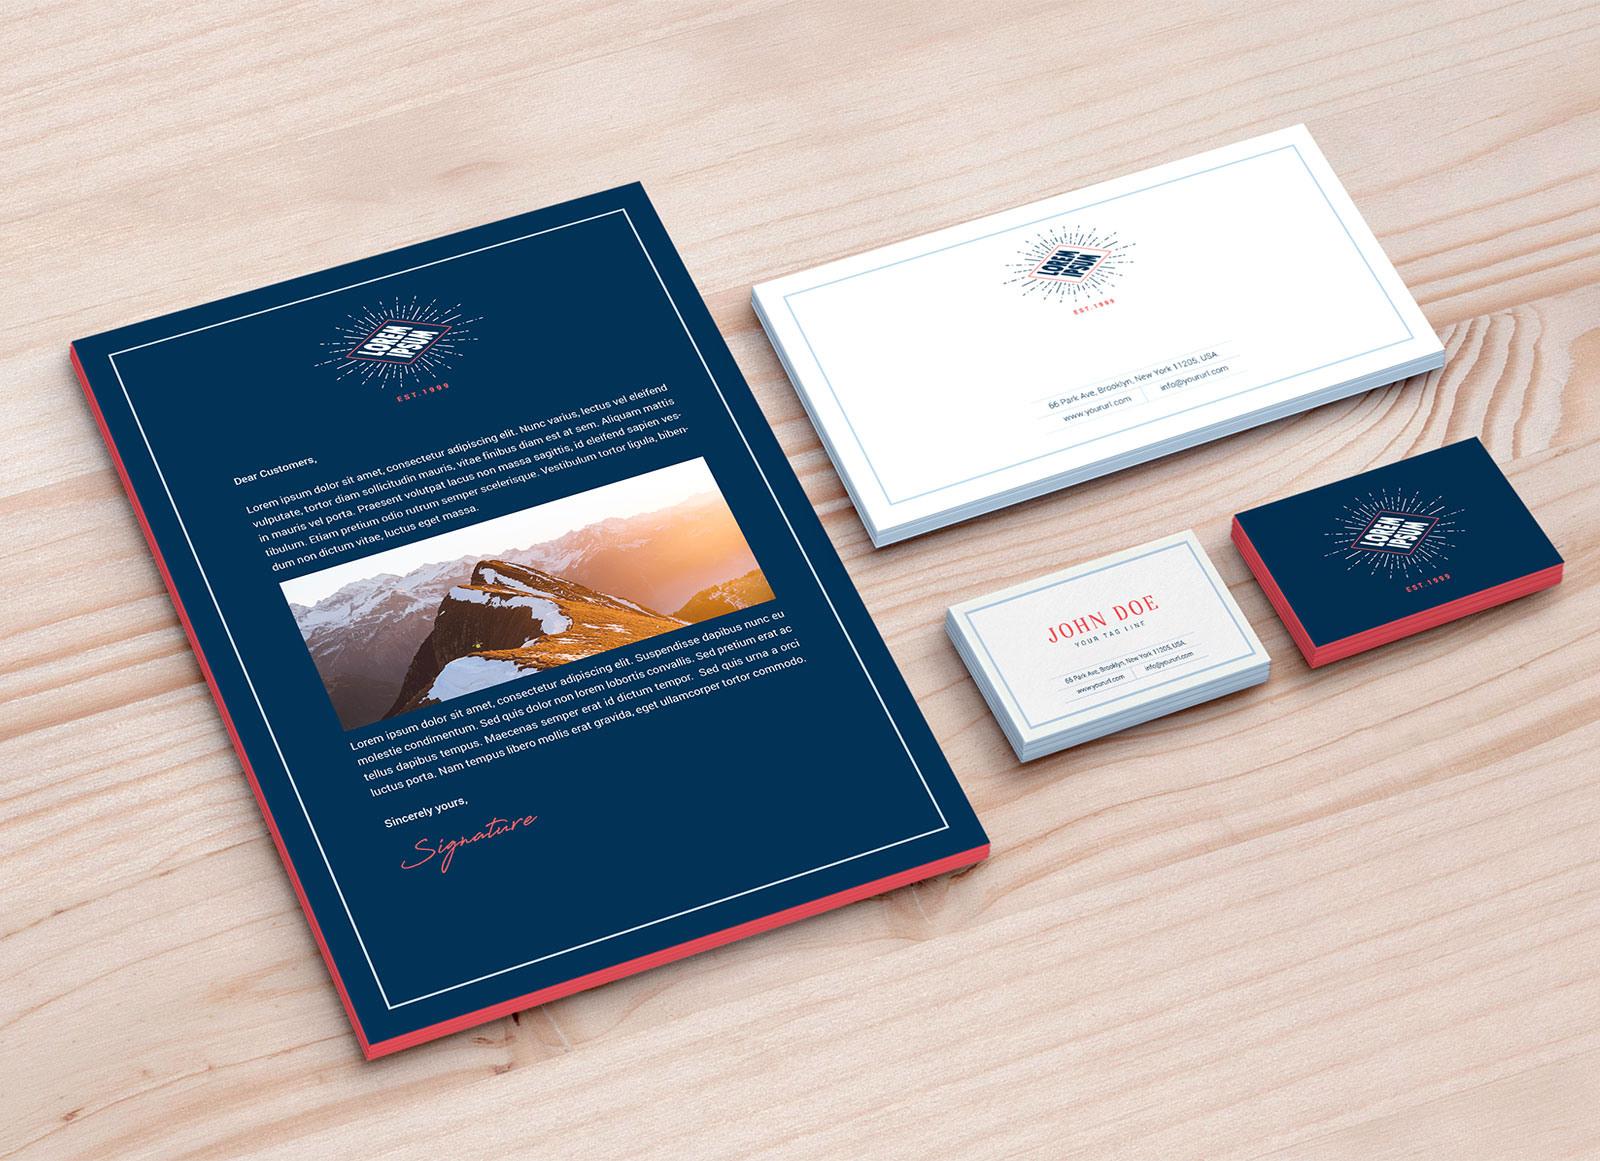 Free-Essential-Stationery-Branding-Mockup-PSD-file